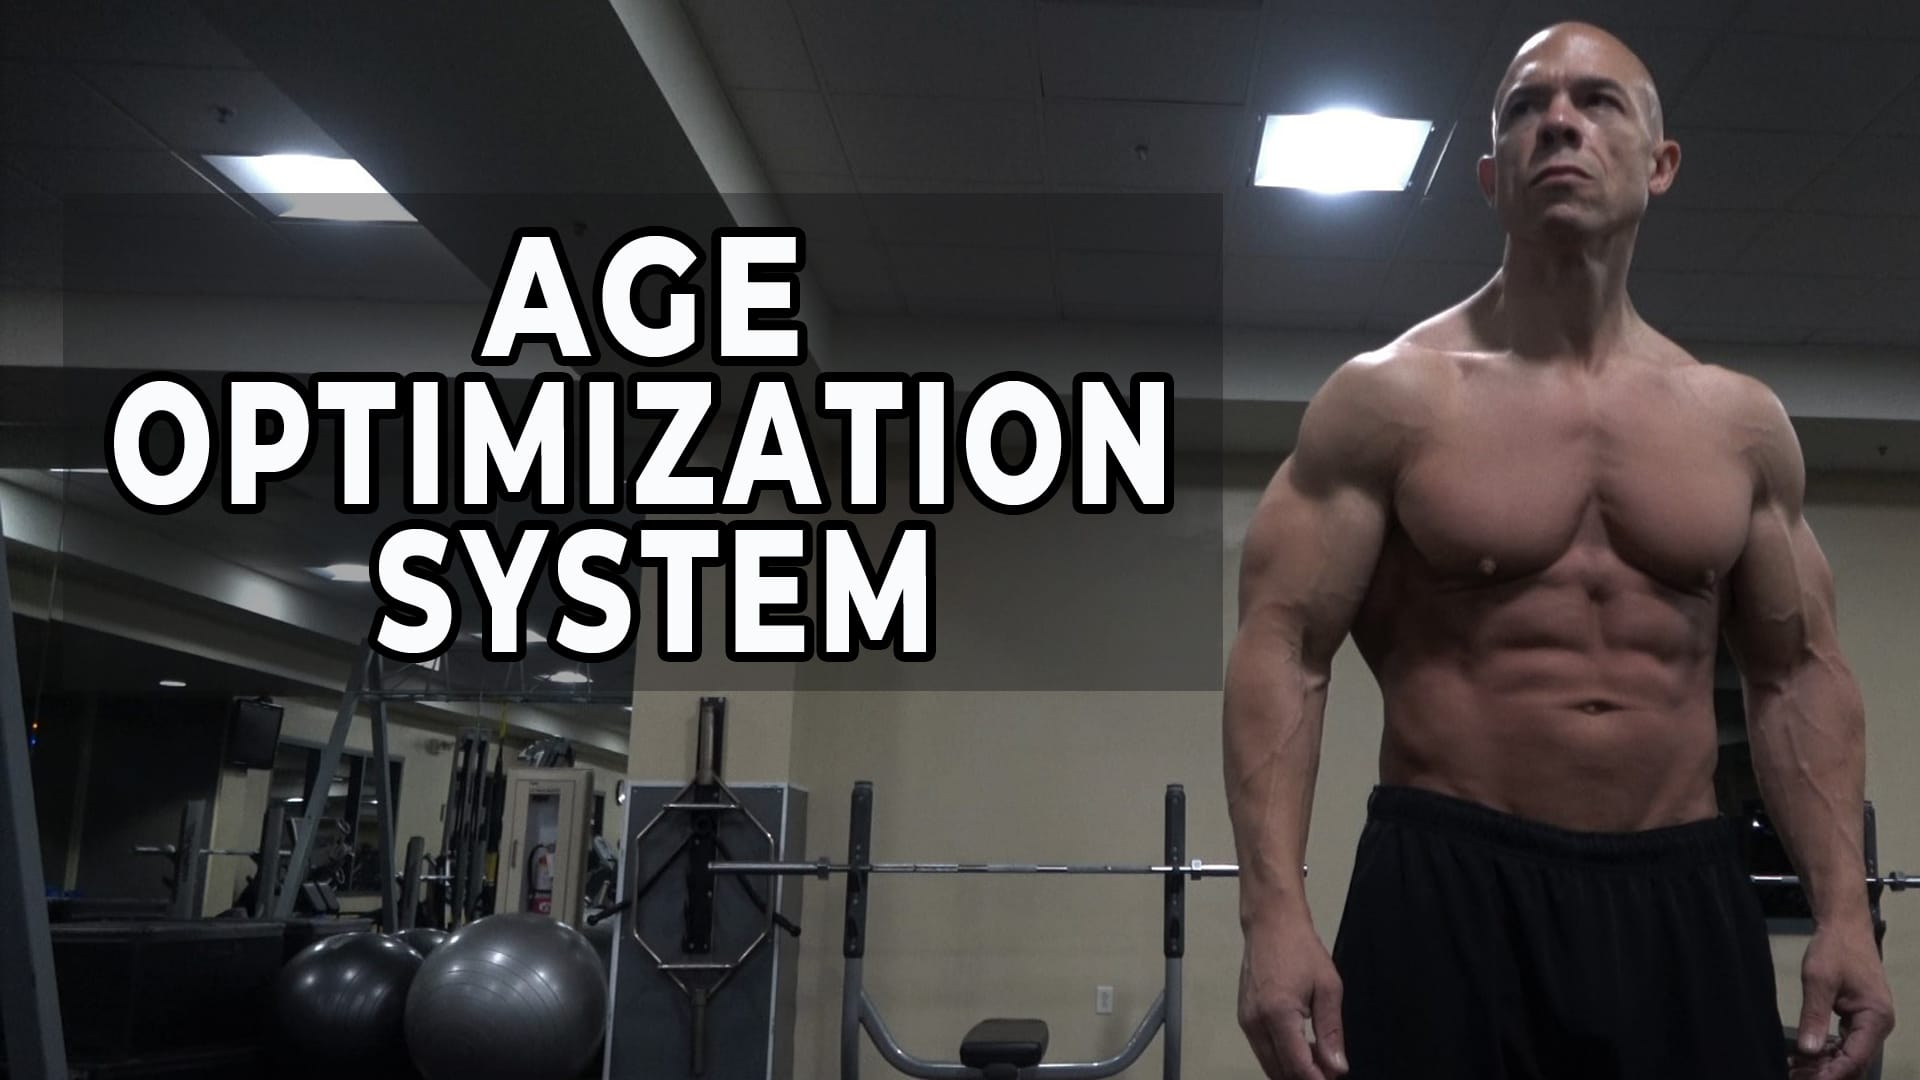 Age Optimization System for Older Men